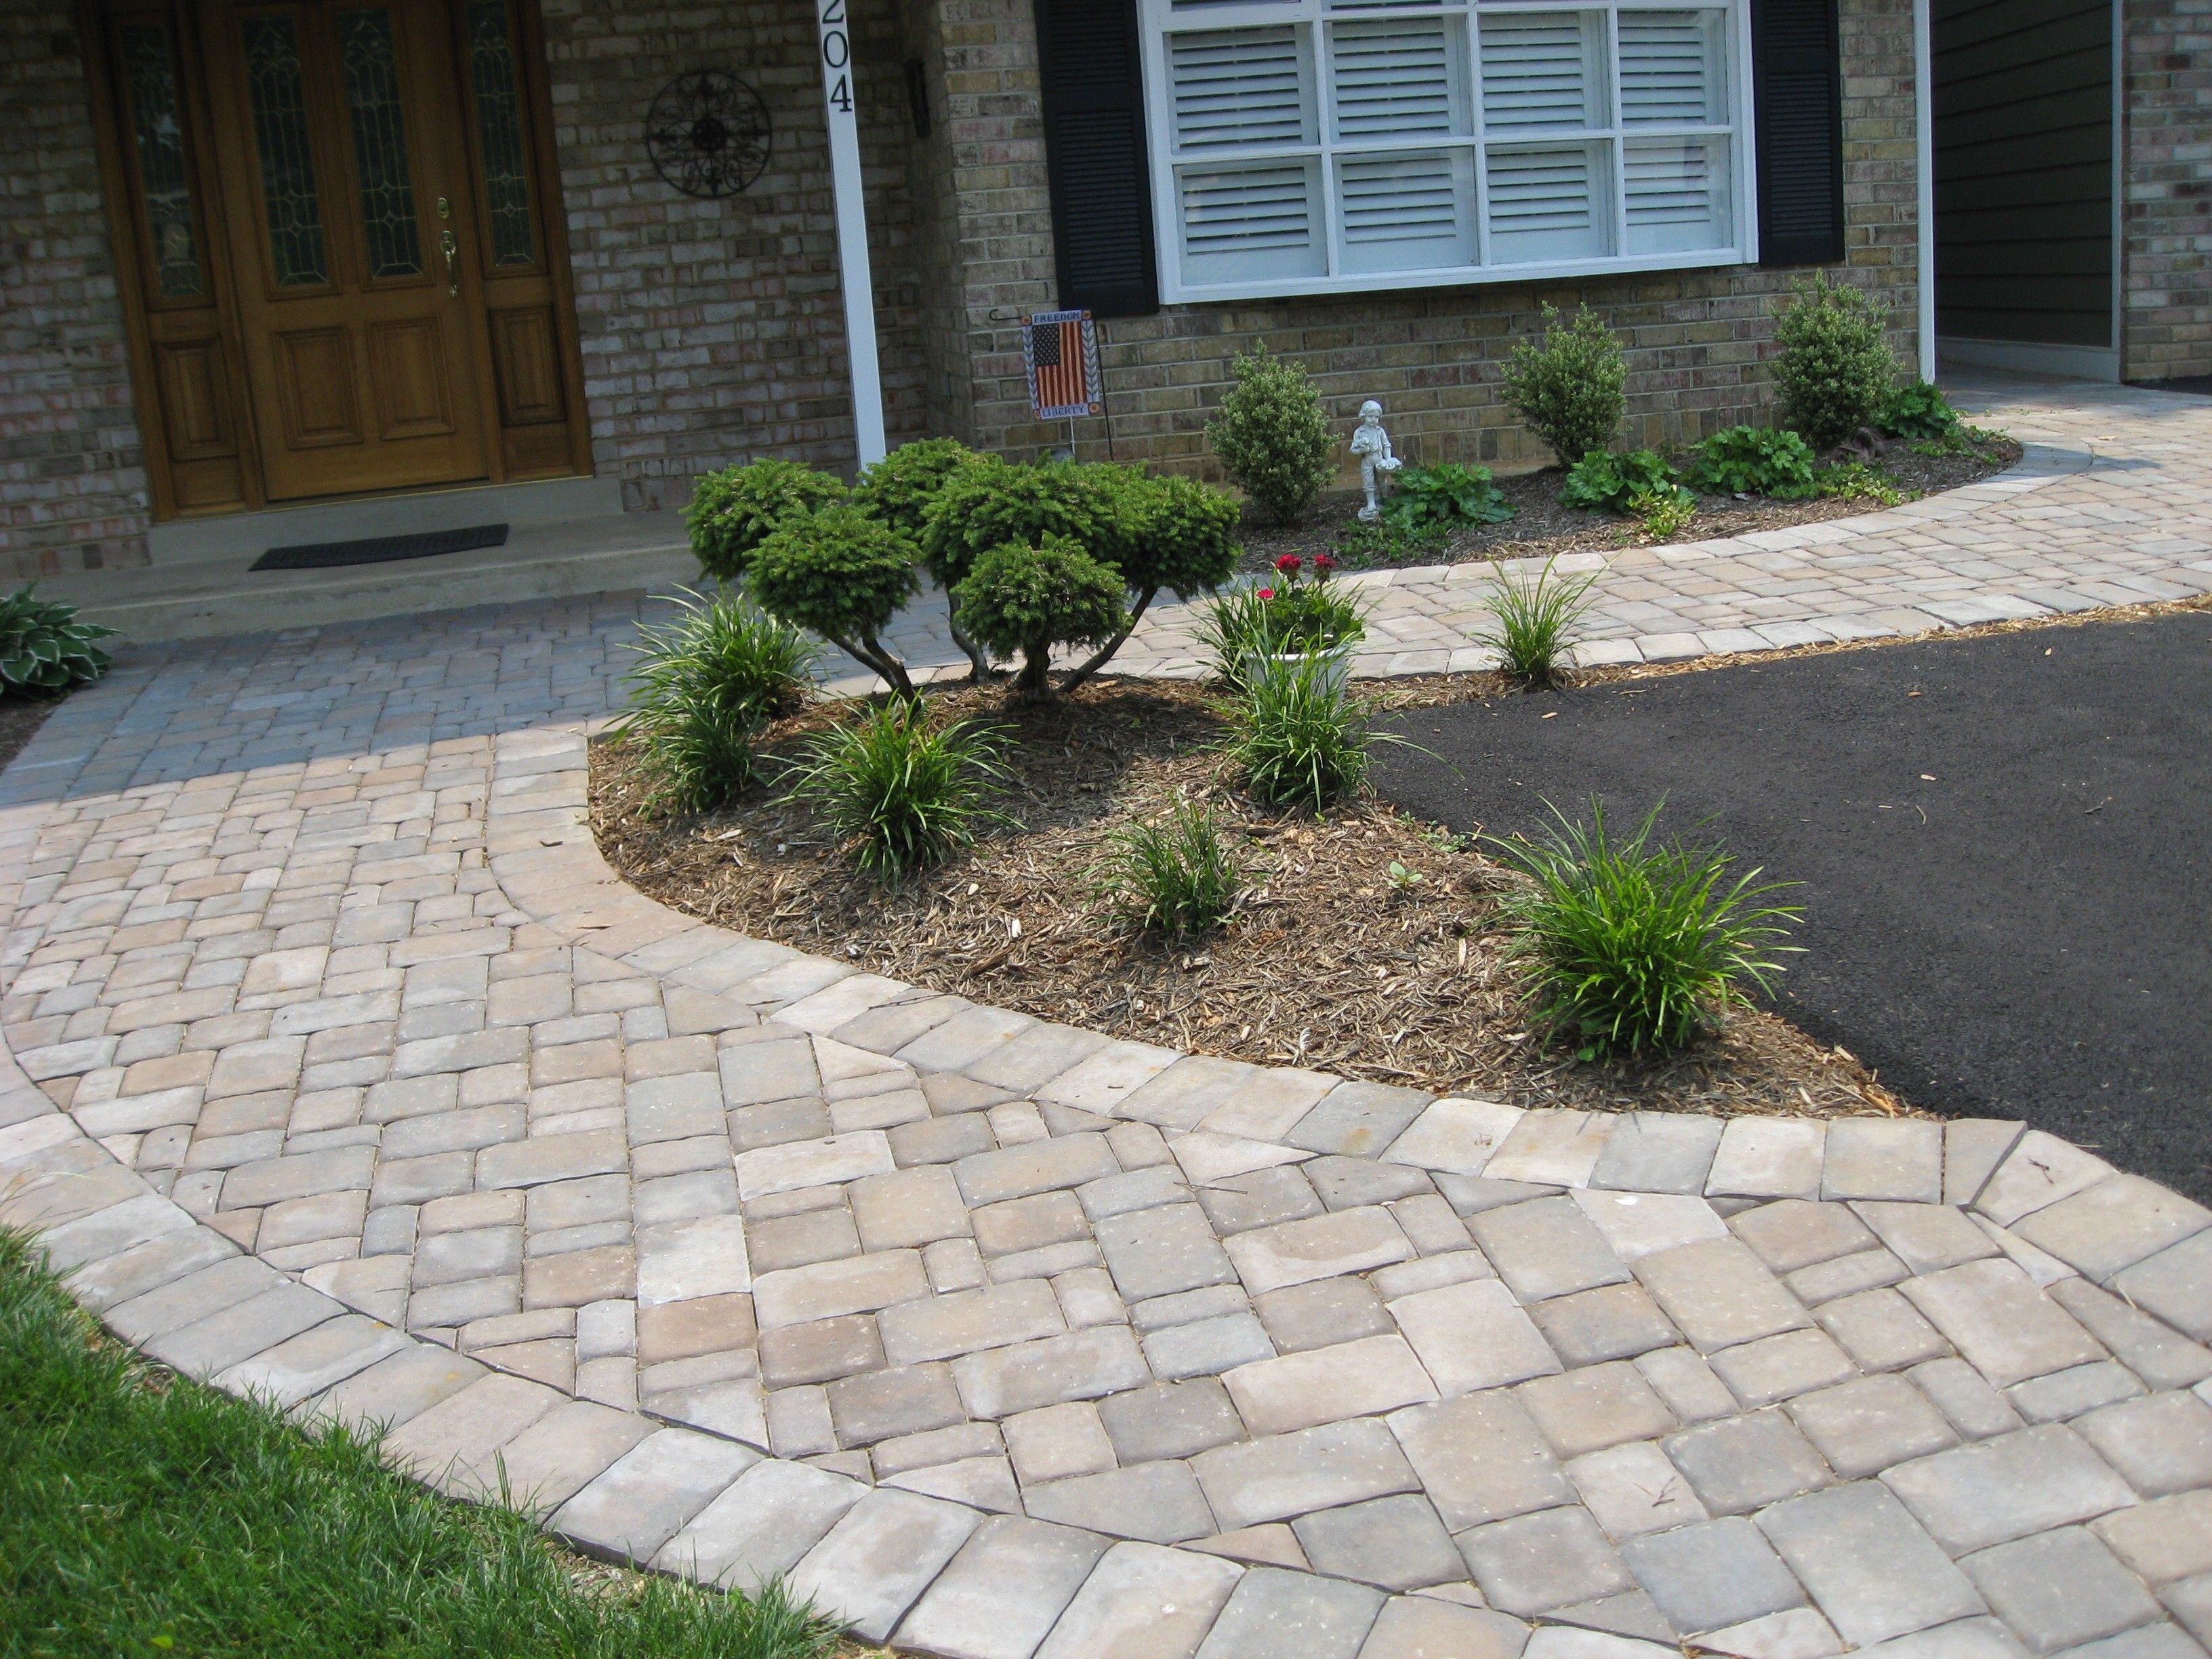 Paver walkway design garden advice for your home for Paved garden designs ideas